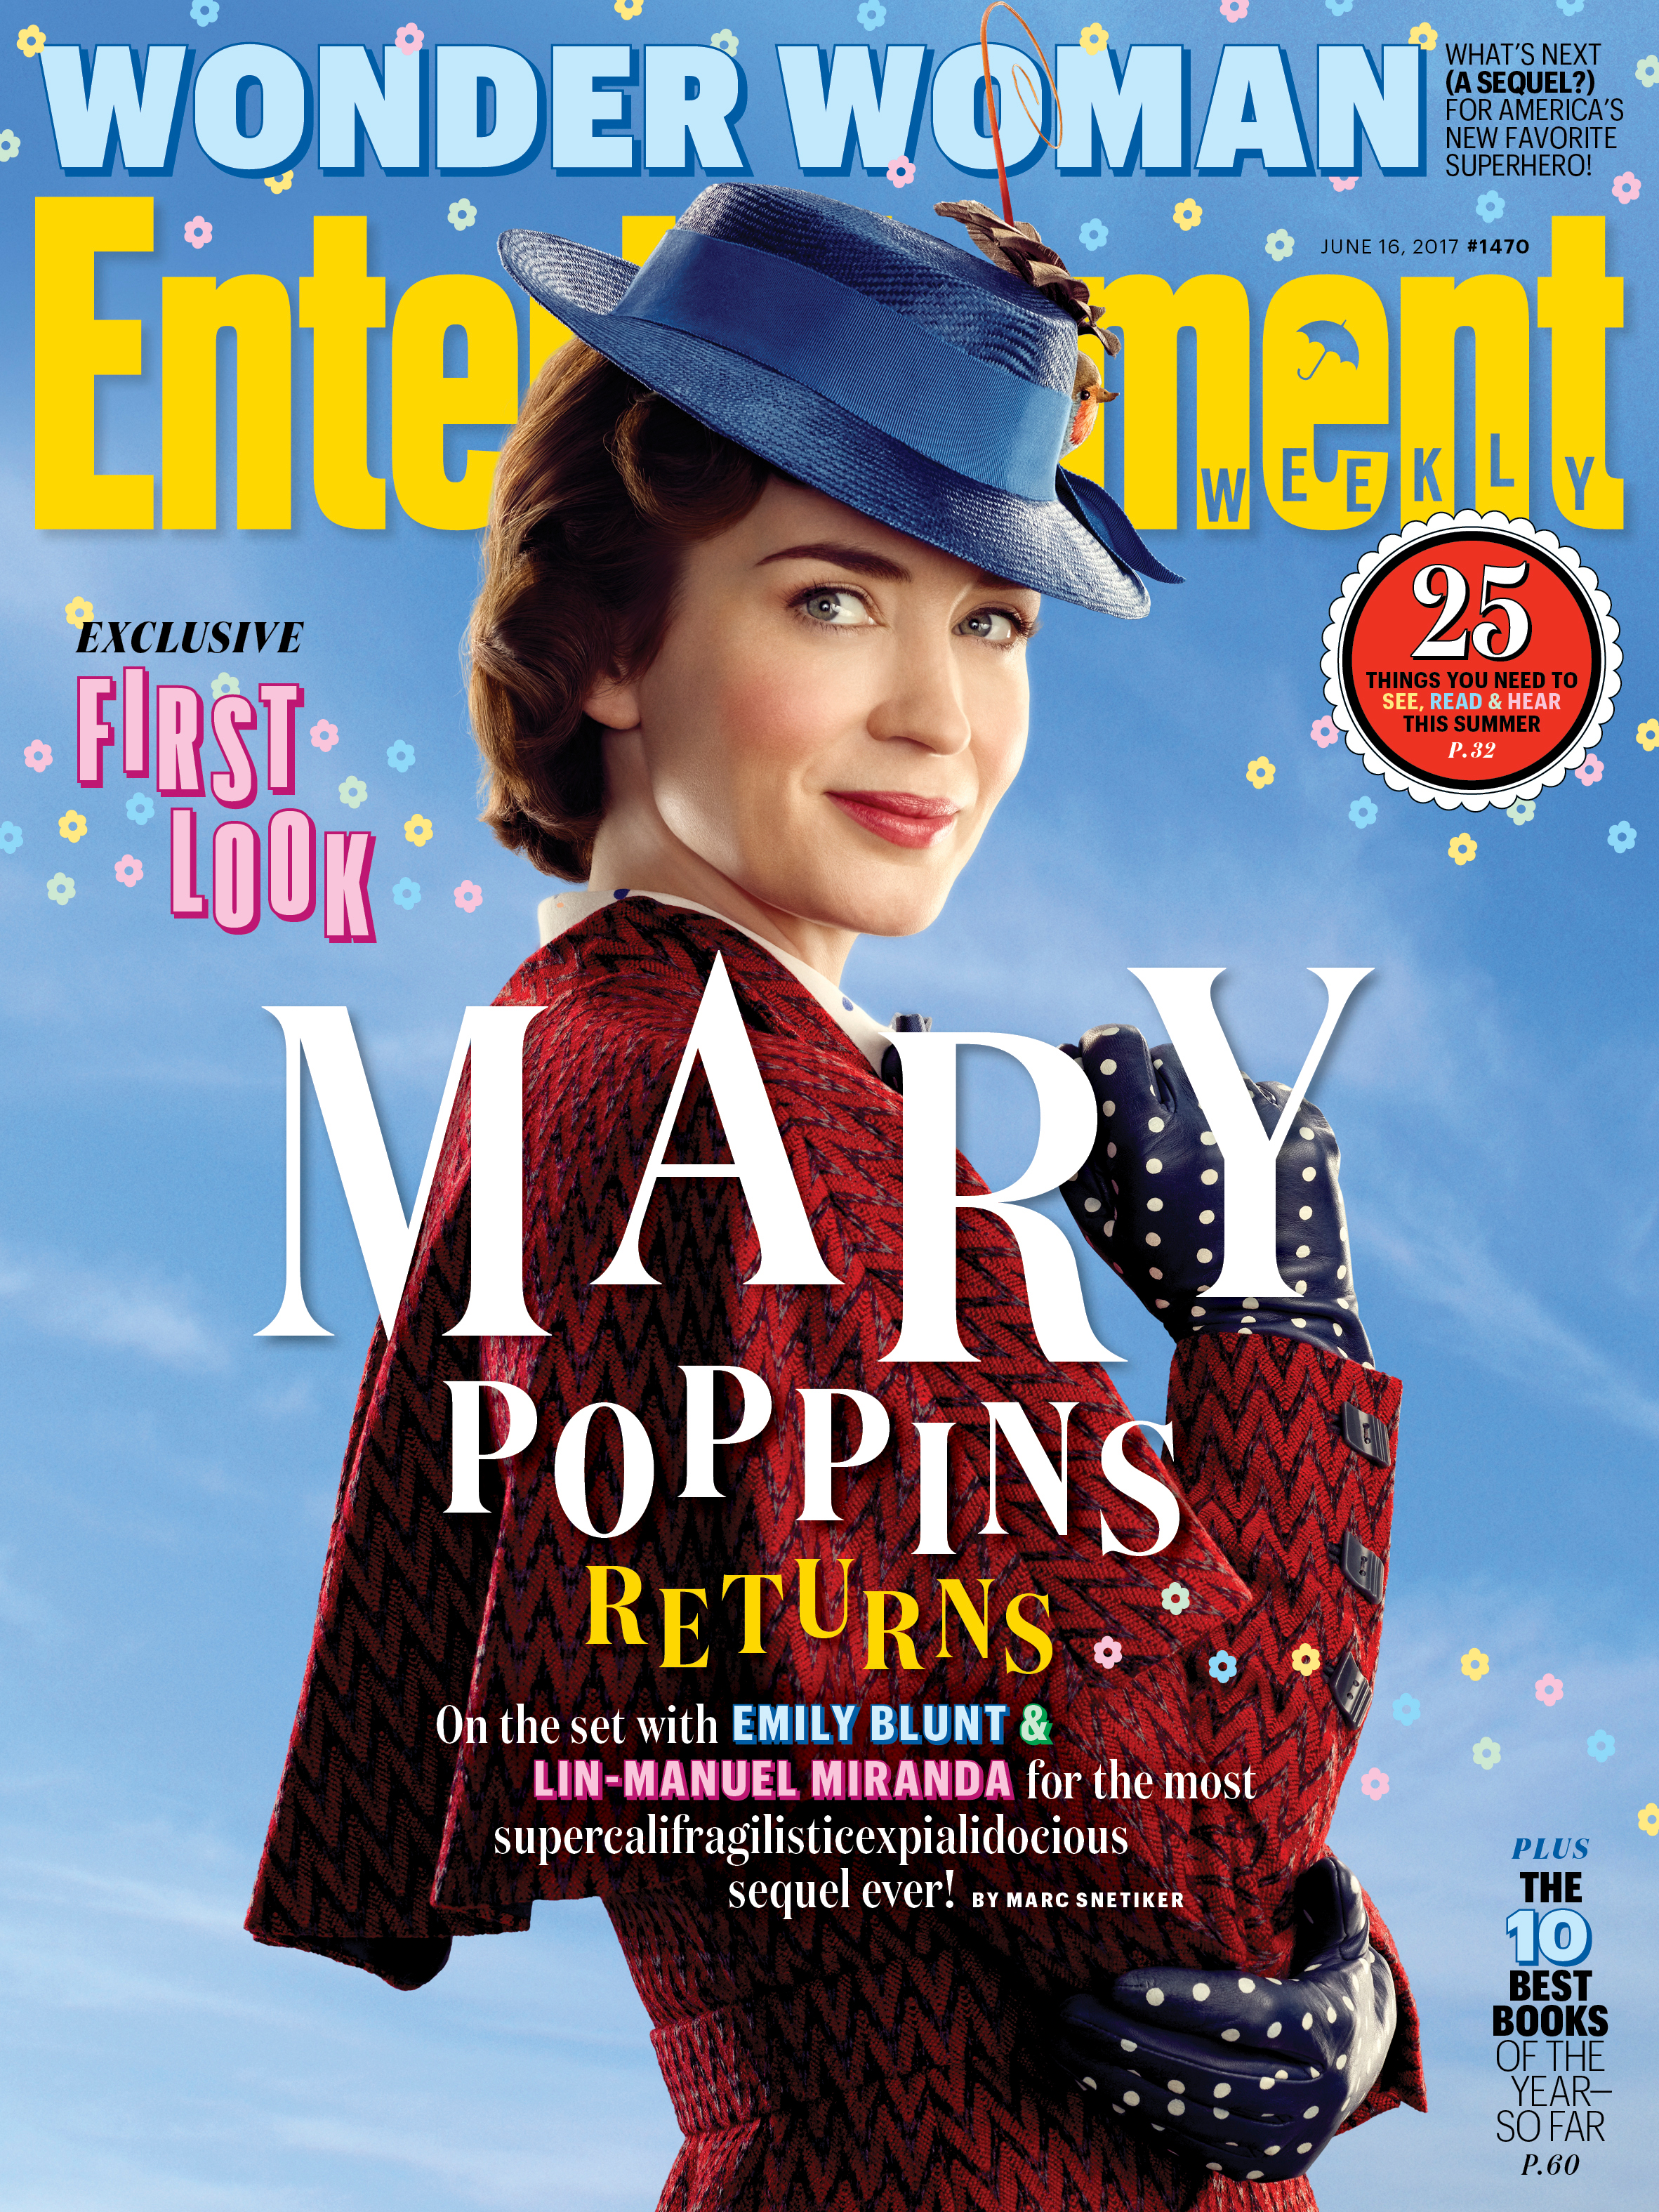 Mary Poppins Returns/Gallery